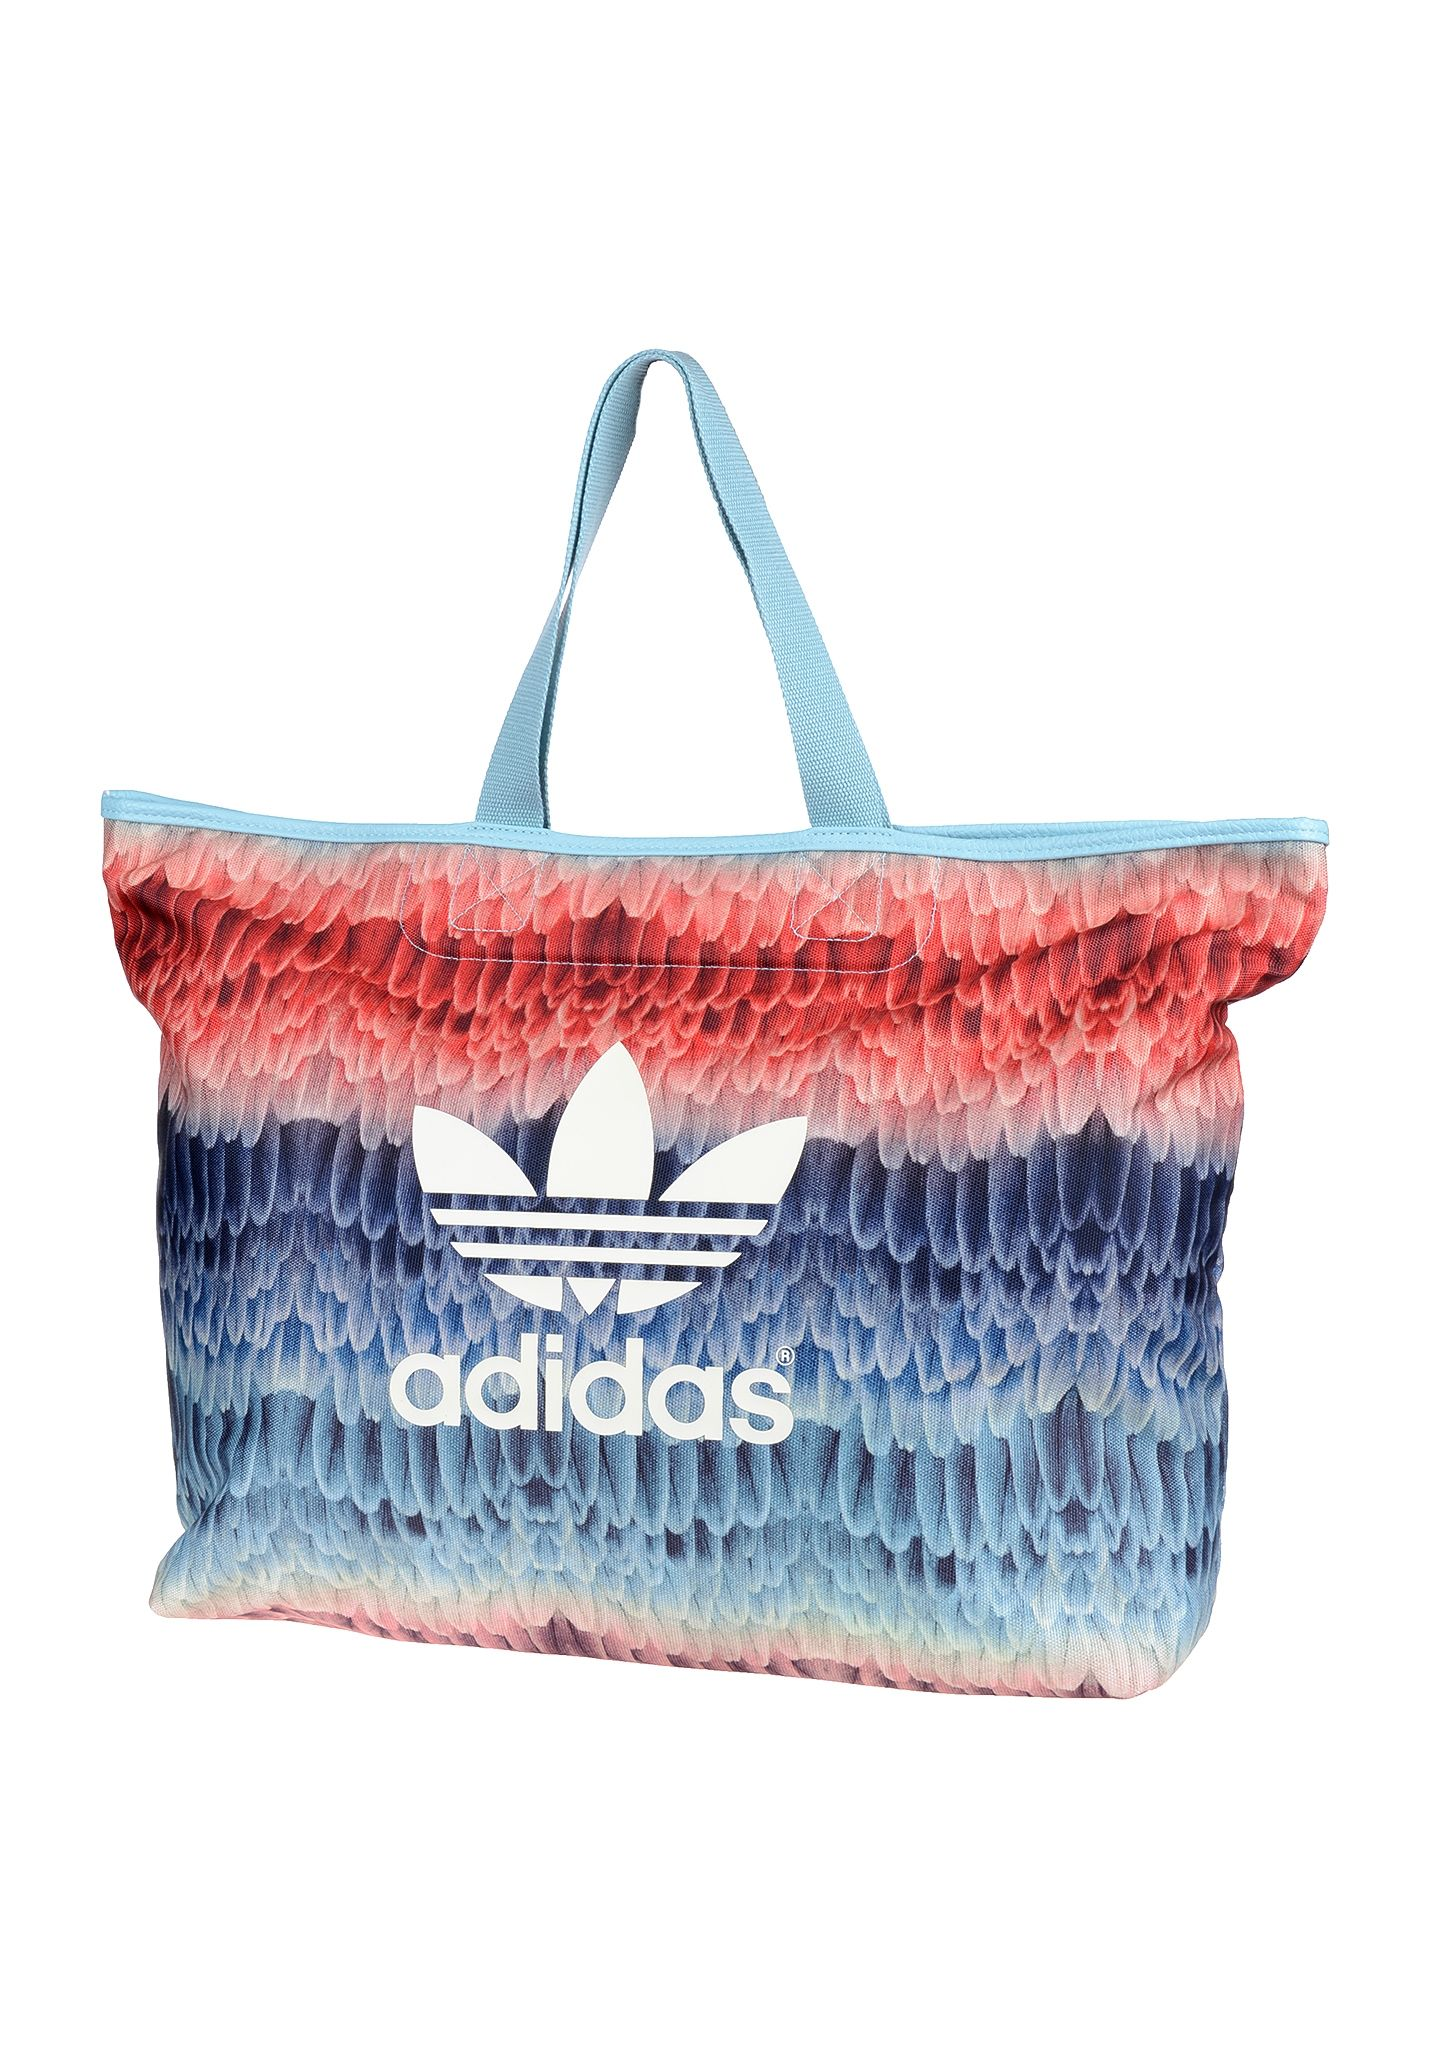 f73d0a34cfd2 ADIDAS ORIGINALS Bshopper Menire - Messenger Bag for Women - Multicolor -  Planet Sports